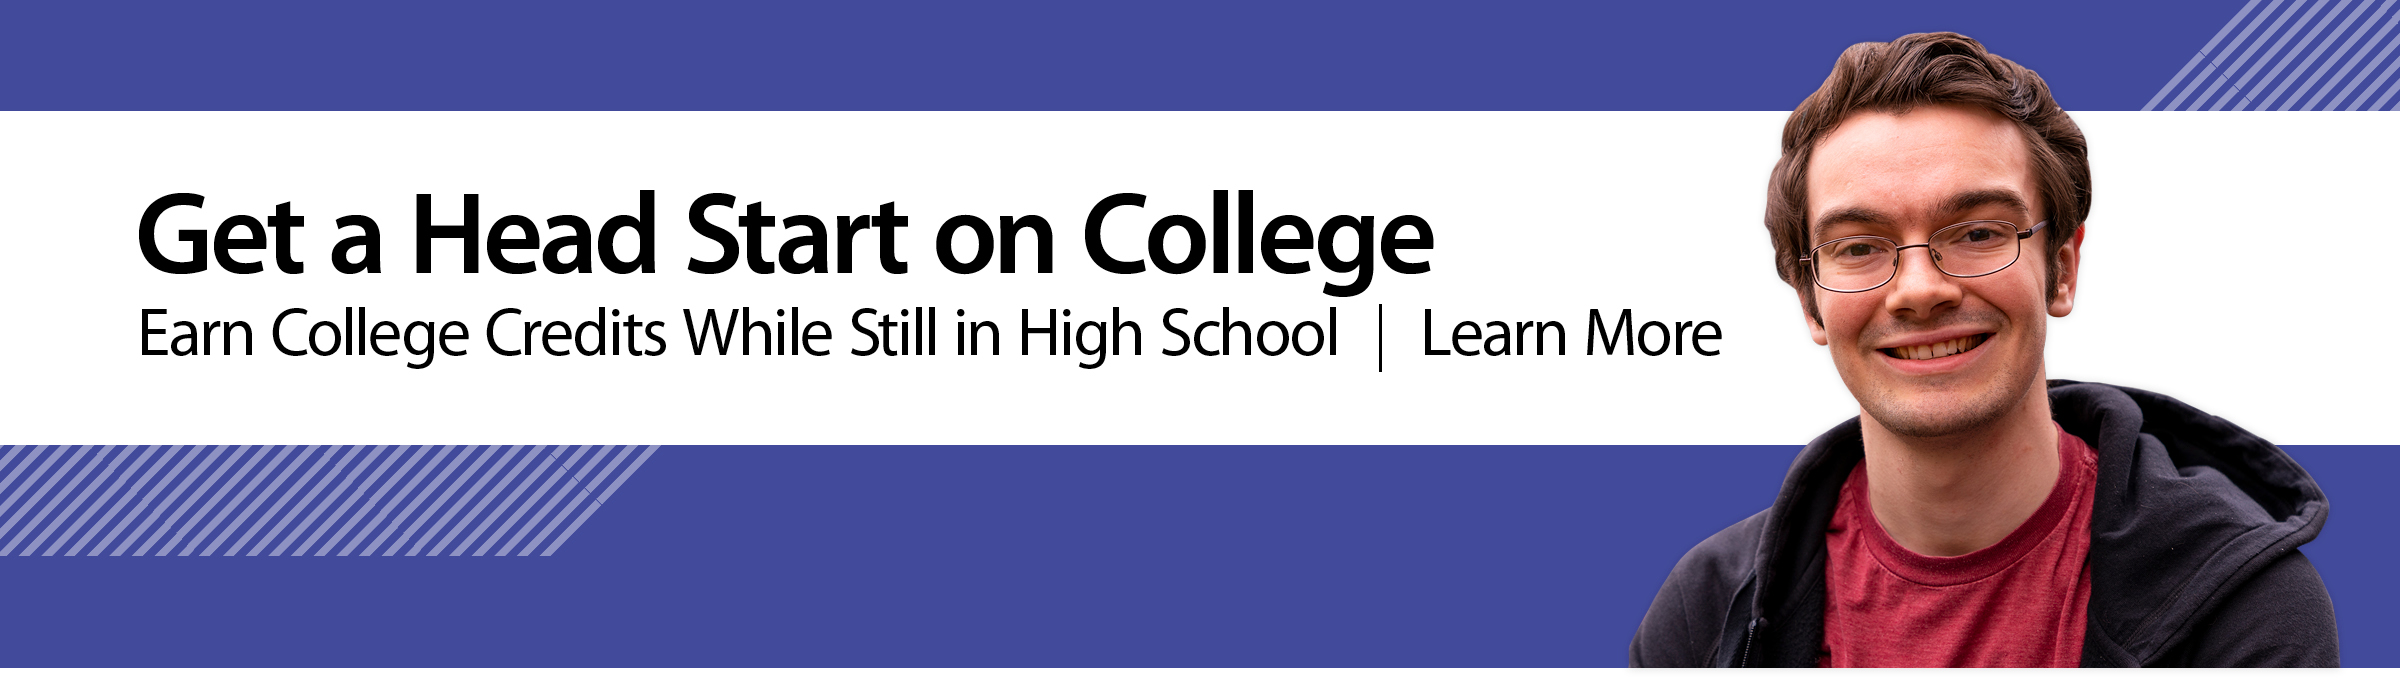 Get a Head Start on College Earn College Credits while still in high school